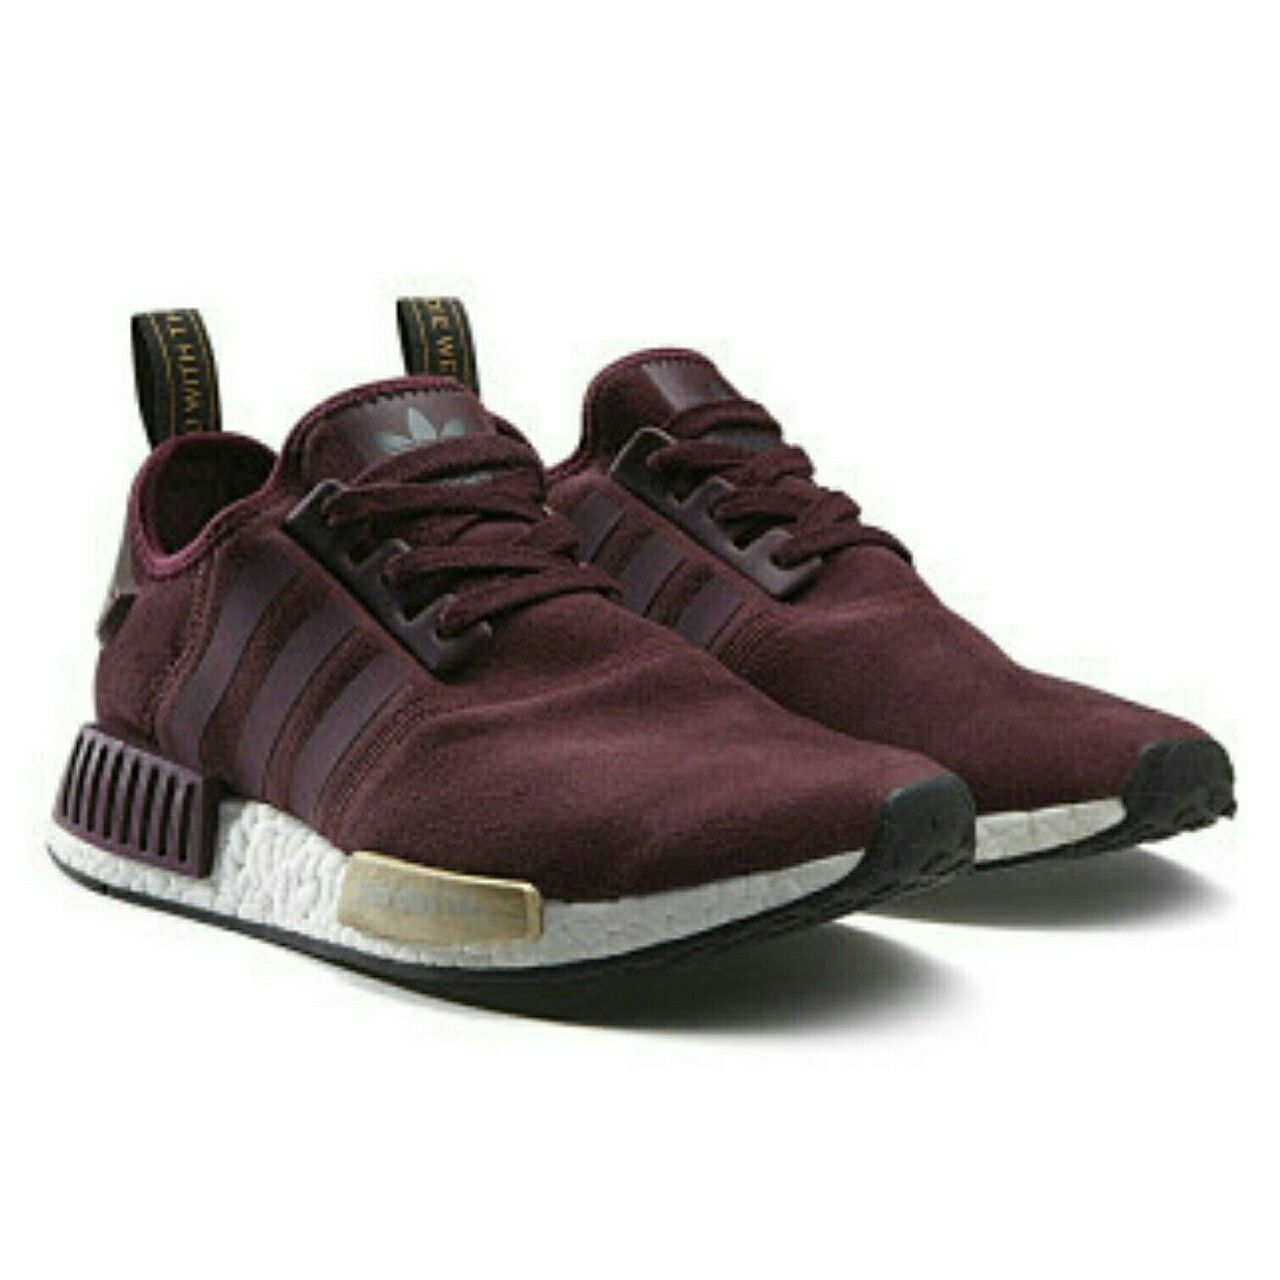 I\u0027m a big fan of the adidas Originals NMD, it\u0027s so comfy and looks really  good on foot. So excited that adidas Originals is releasing a new women\u0027s  footwear ...